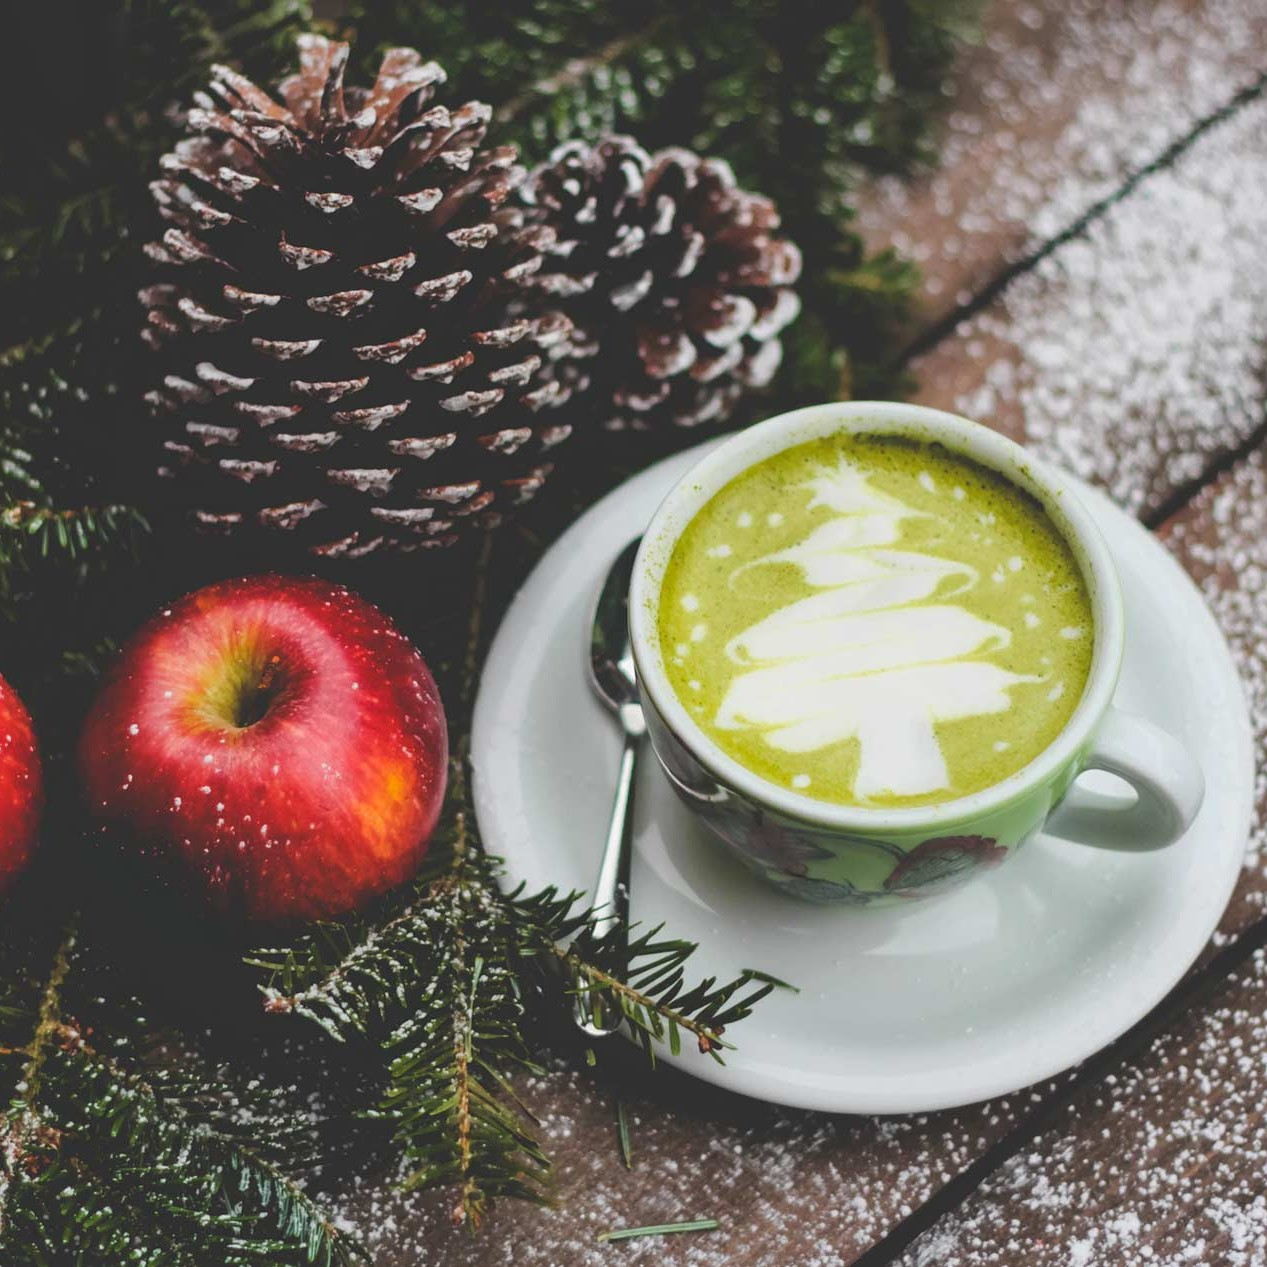 A Few Tips For a Healthy Holiday Season